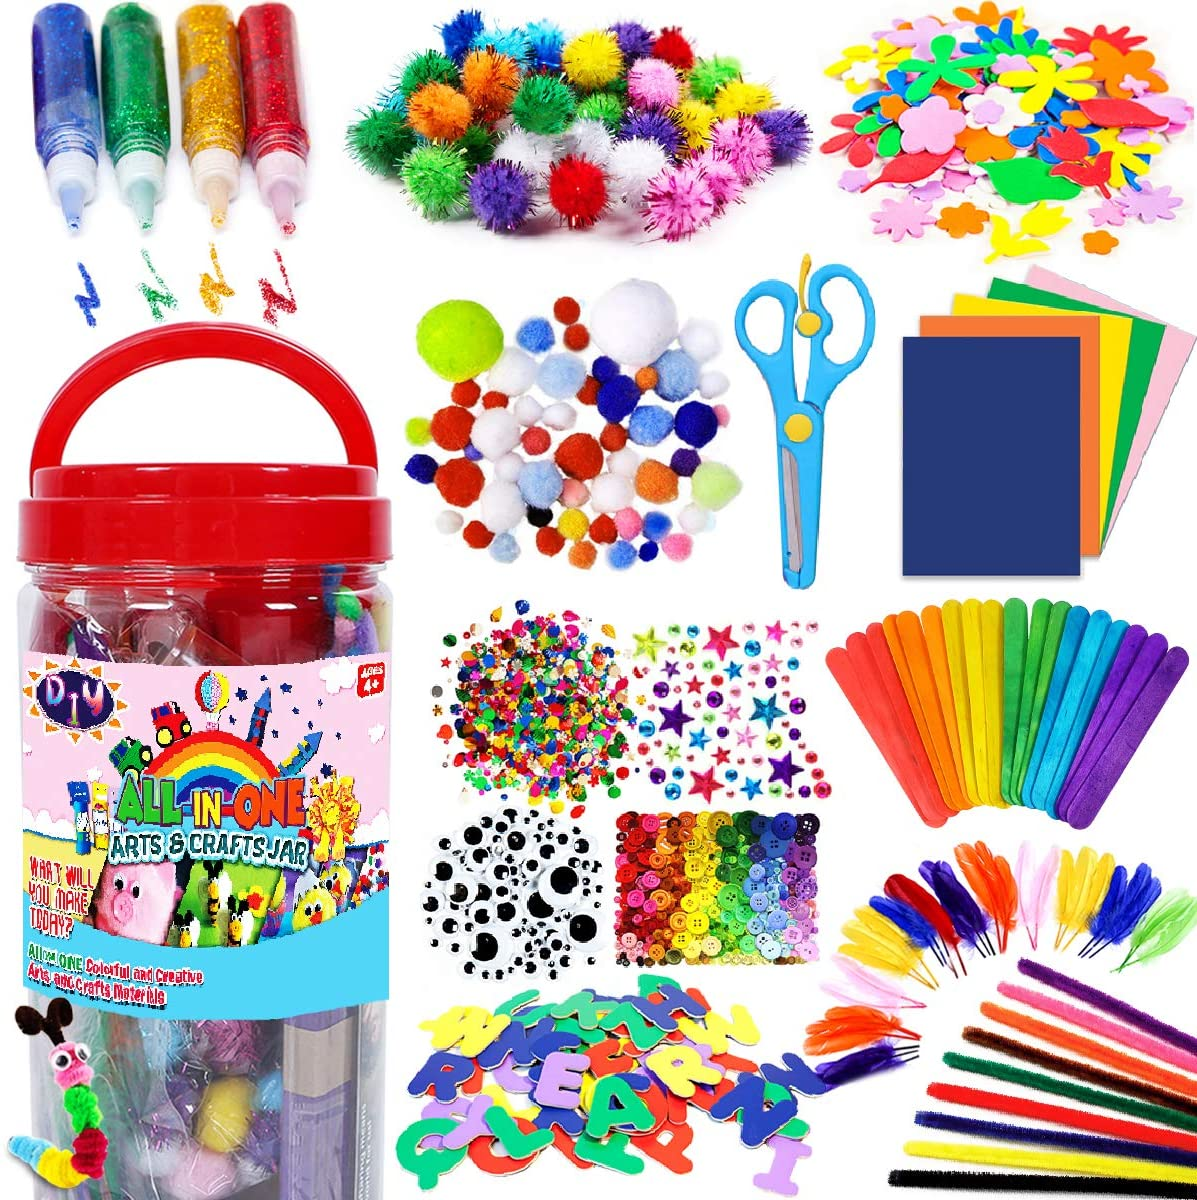 Amazon Com Funzbo Arts And Crafts Supplies For Kids Craft Art Supply Kit For Toddlers Age 4 5 6 7 8 9 All In One D I Y Crafting School Kindergarten Homeschool Supplies